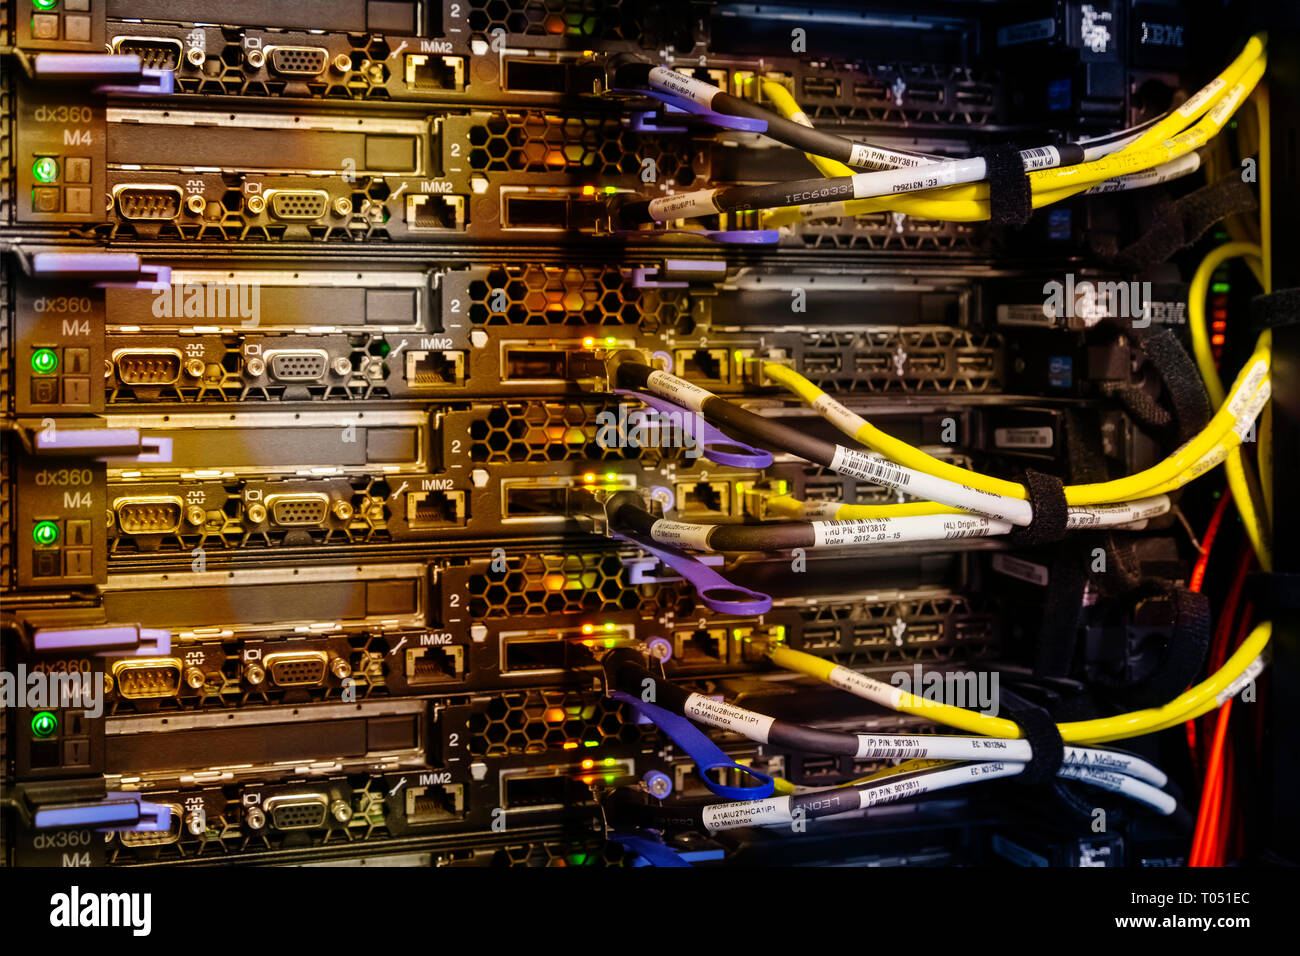 Supercomputer with cables and lamps - Stock Image